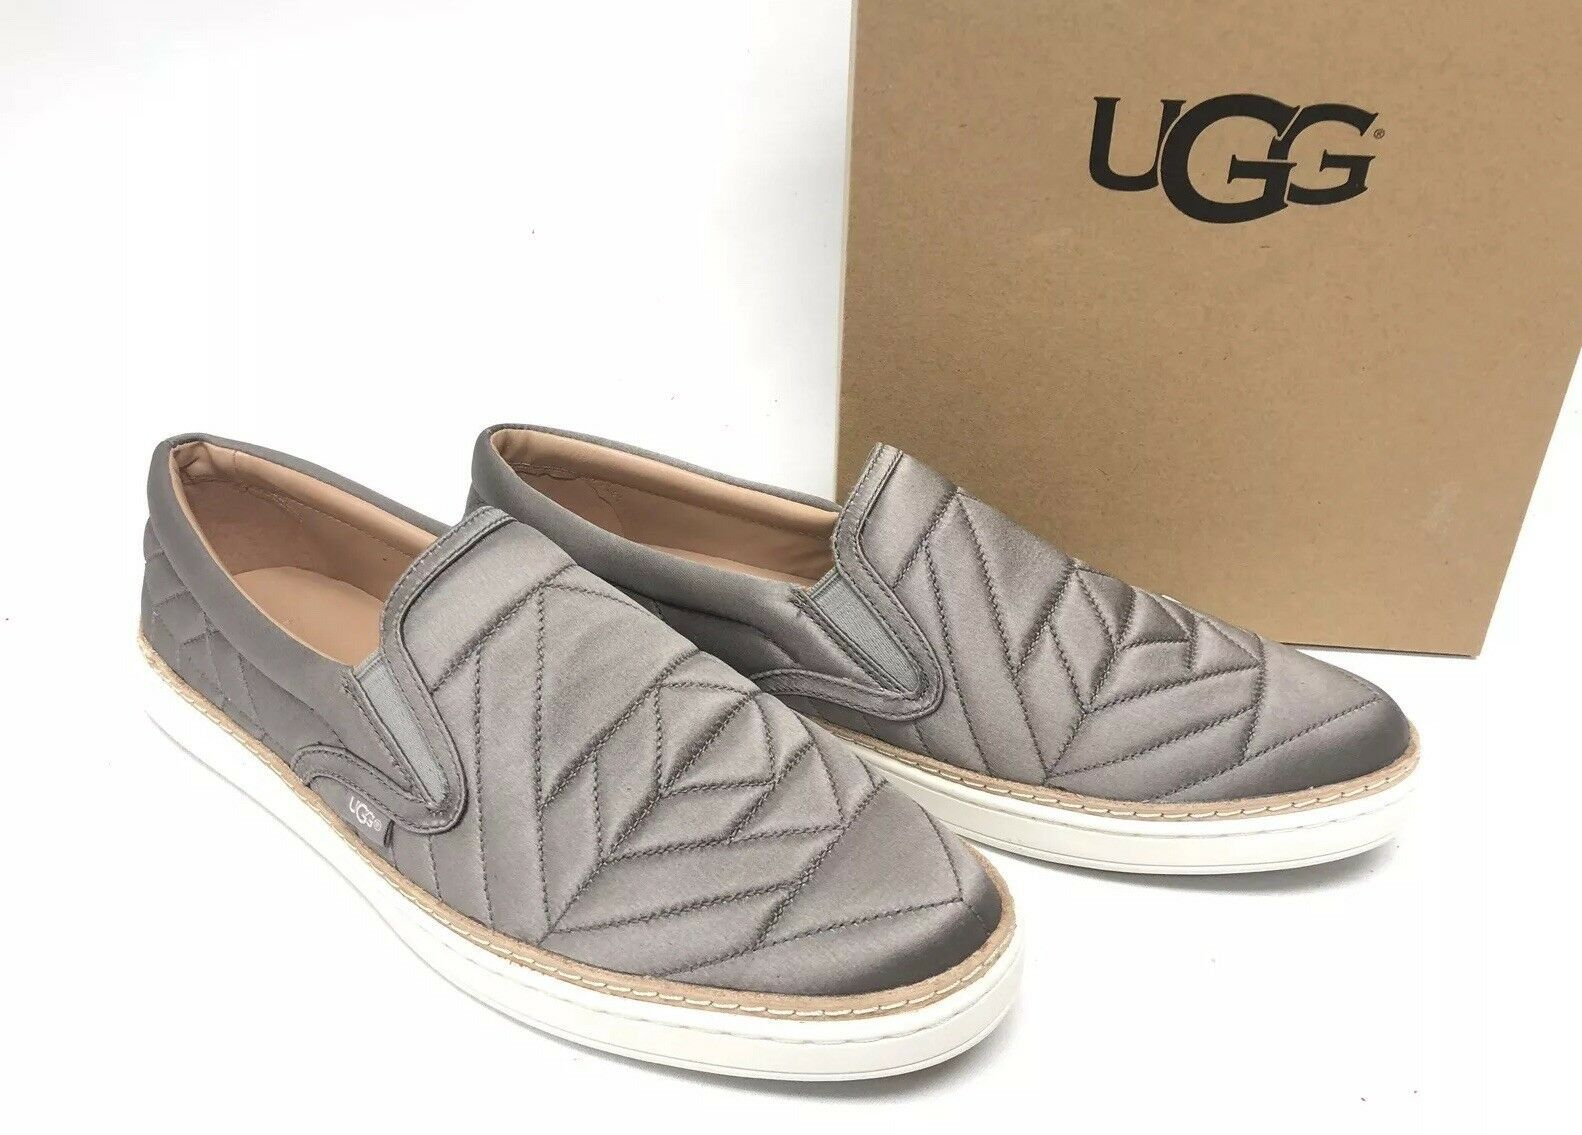 54baeb76705 Ugg Australia Sneaker: 2 customer reviews and 221 listings